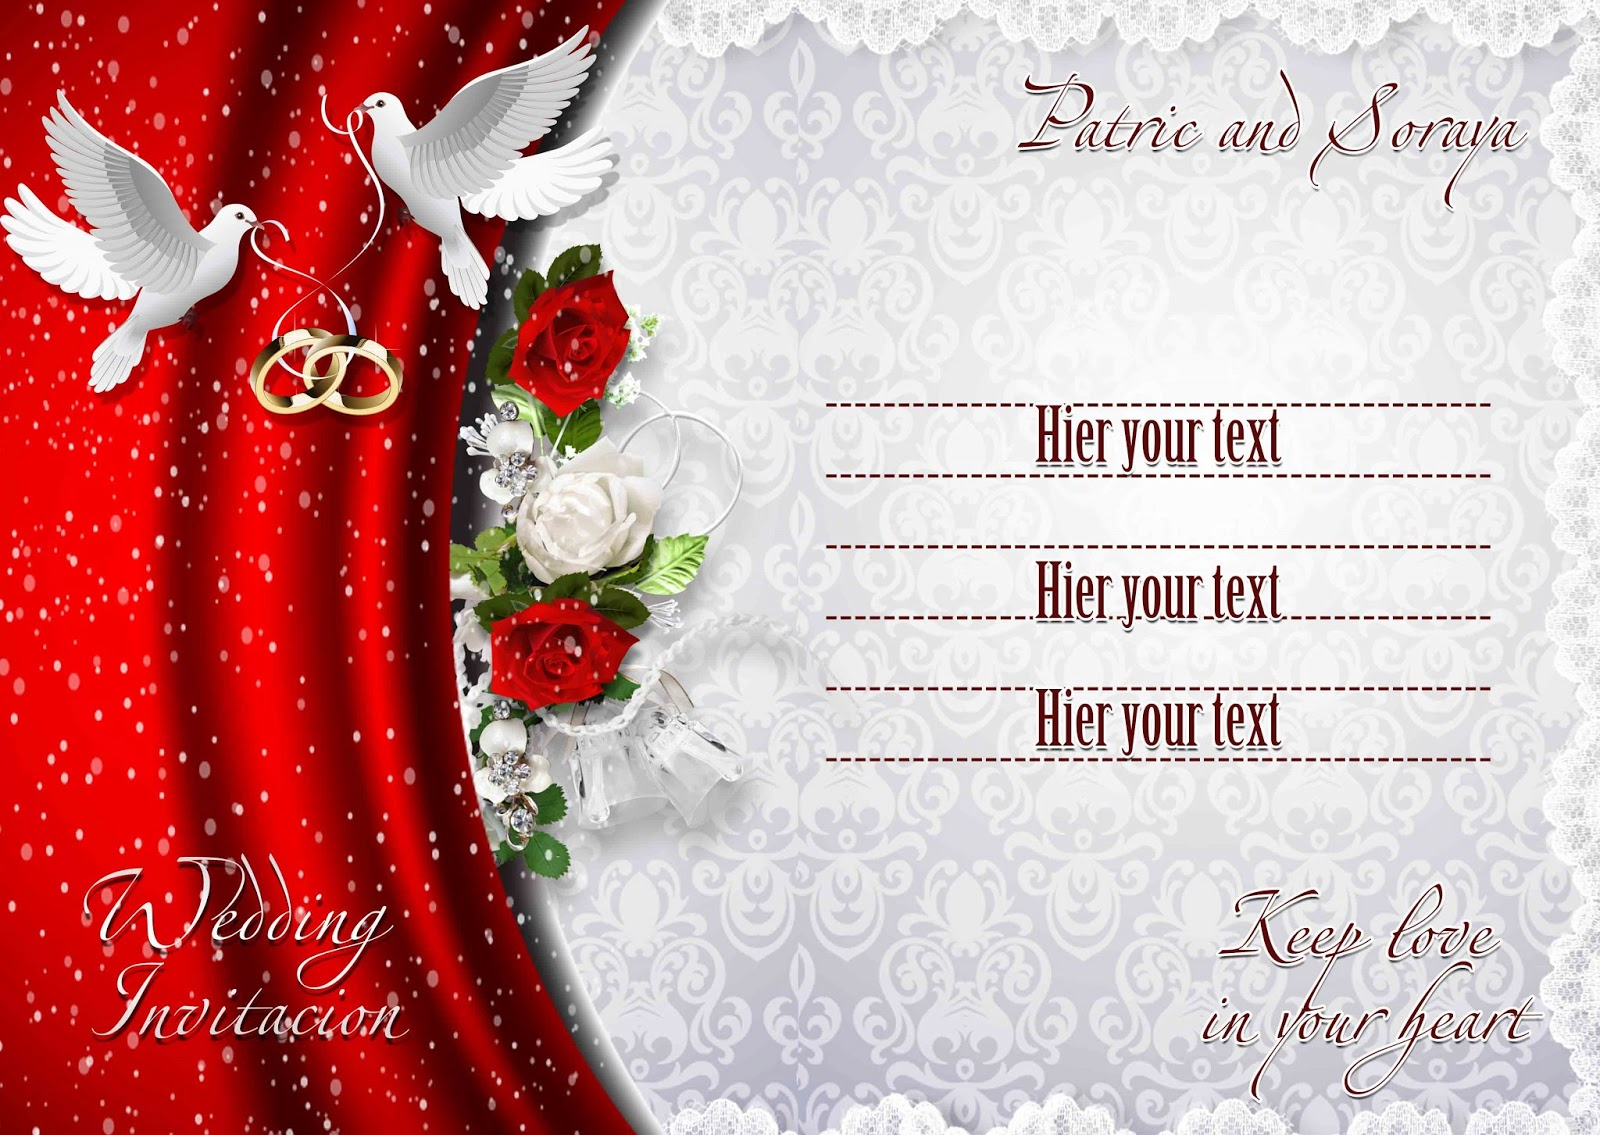 wedding invitation cards psd free - 28 images - wedding card ...